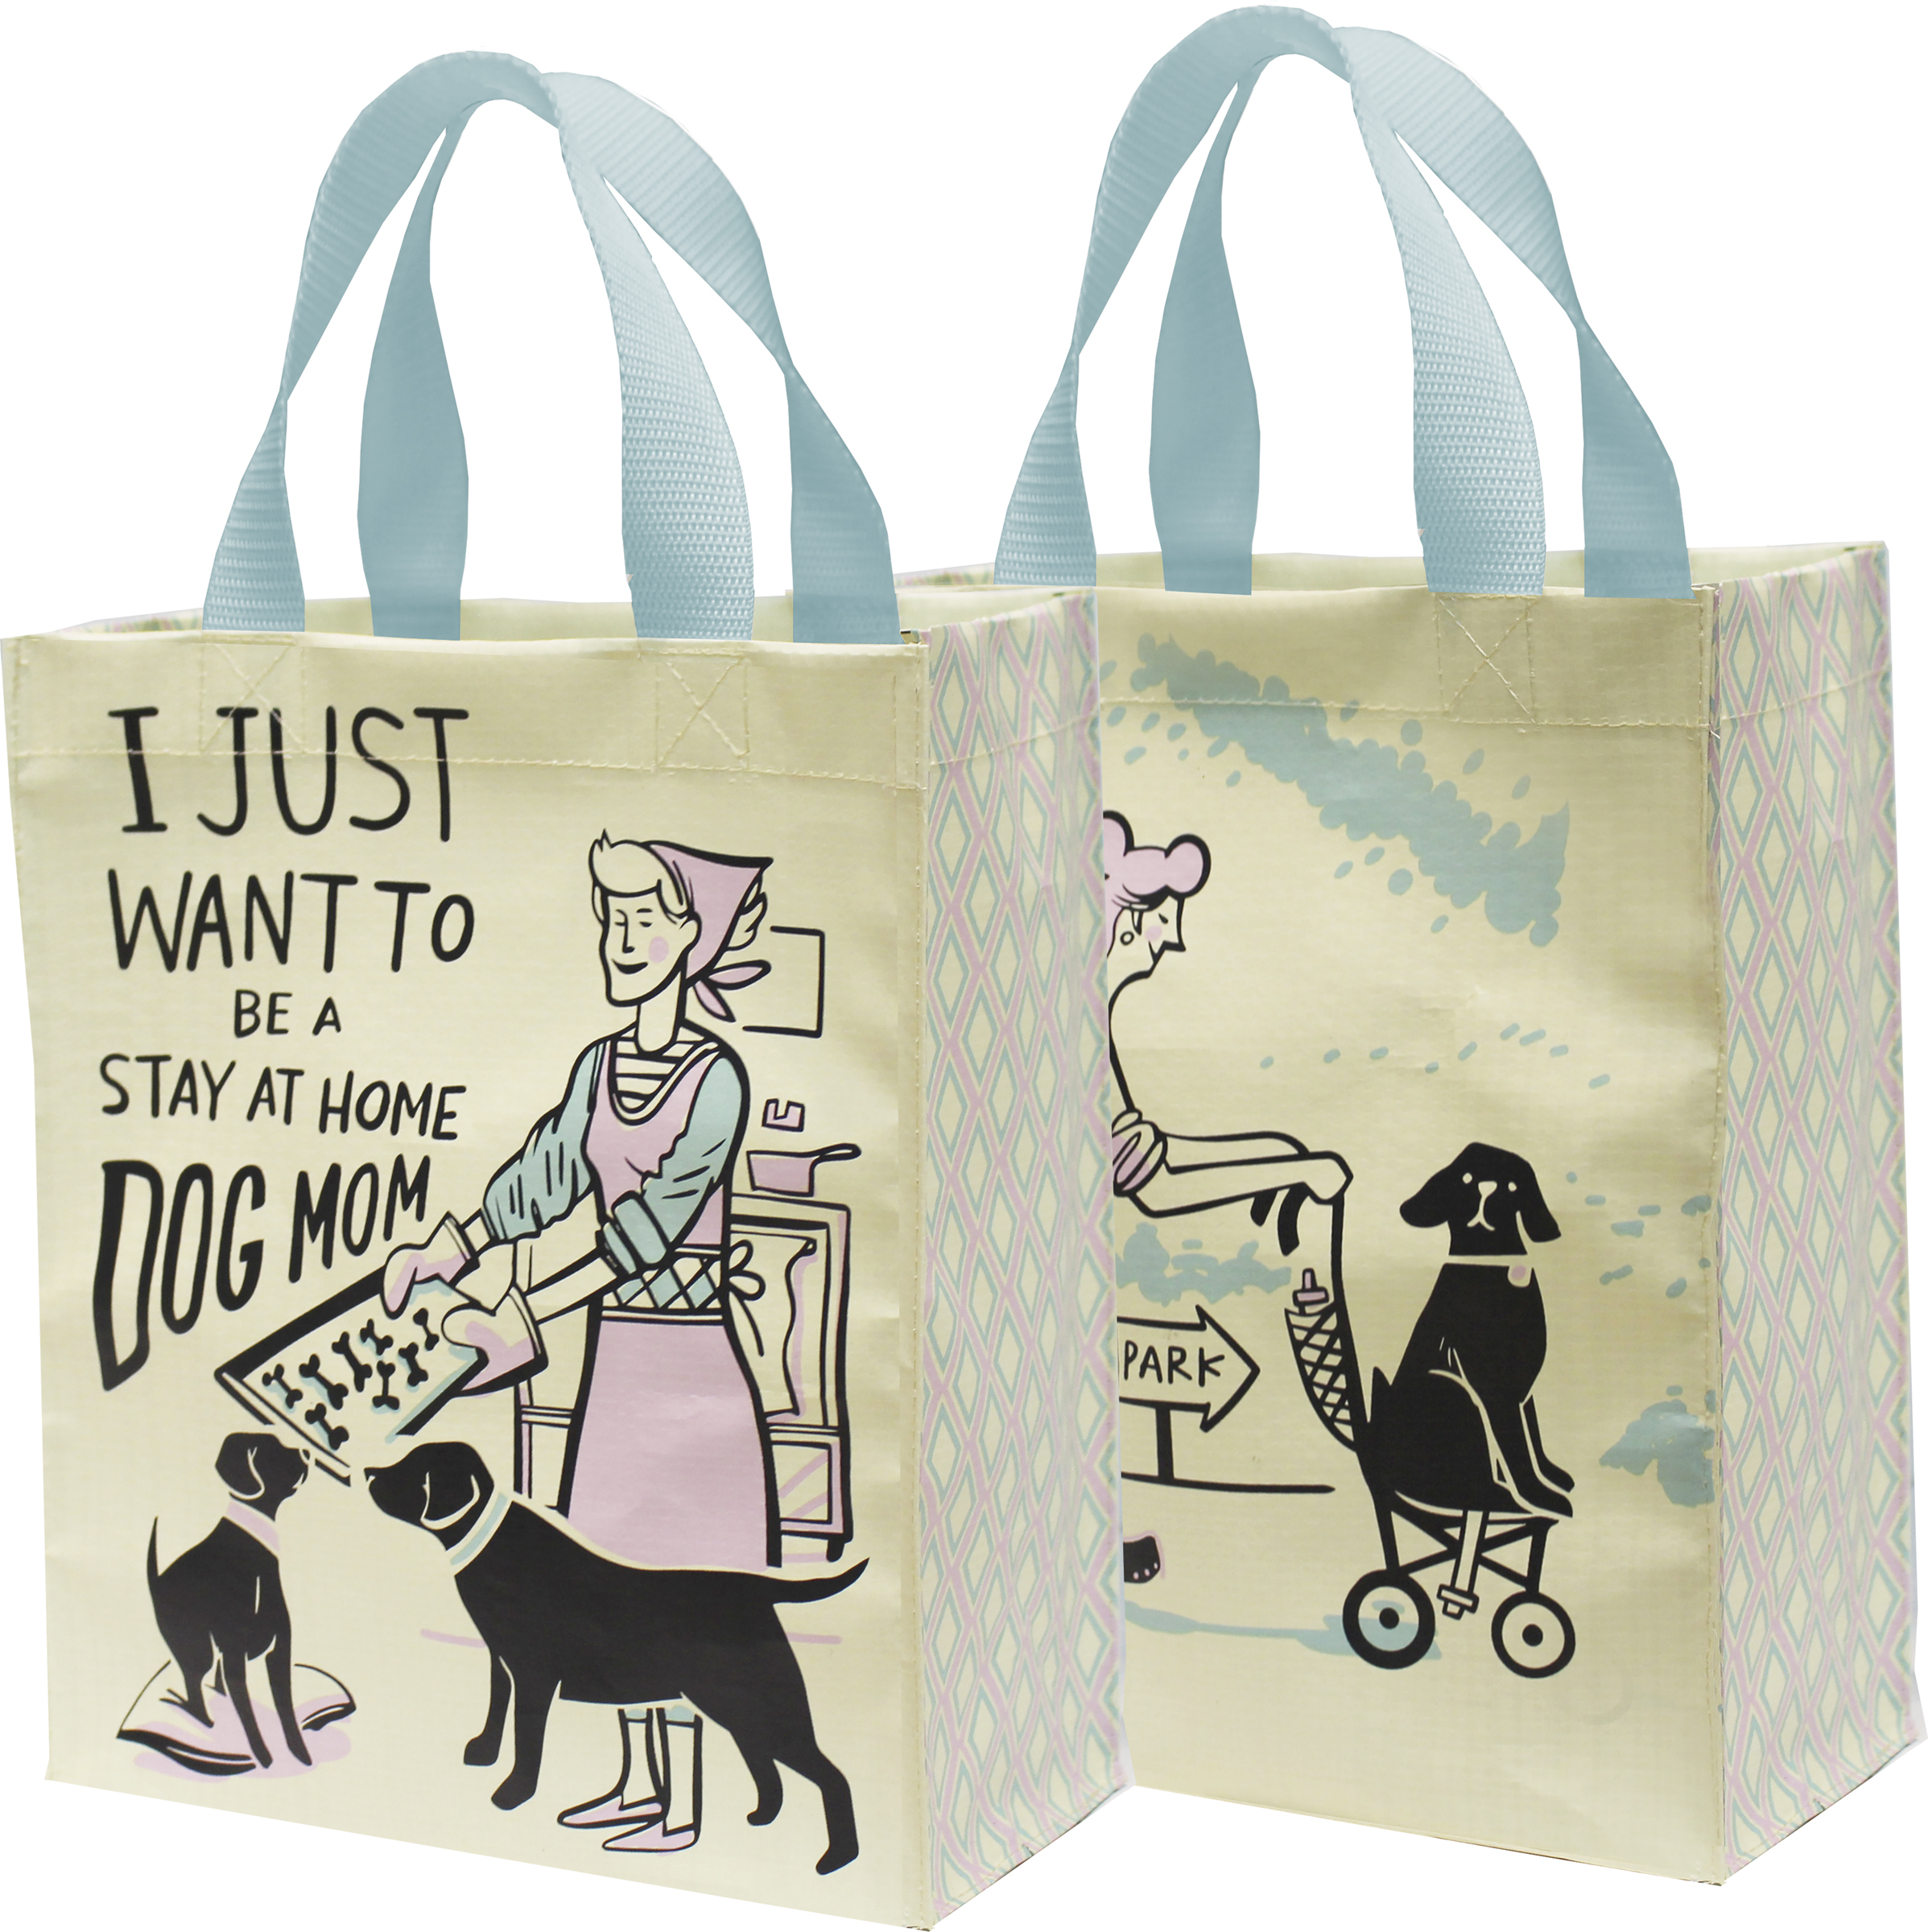 tote bag Dog lover tote dog owner gift dog mom shopping bag netflix dog owner dog mom gift I just want to pet my dog cotton tote